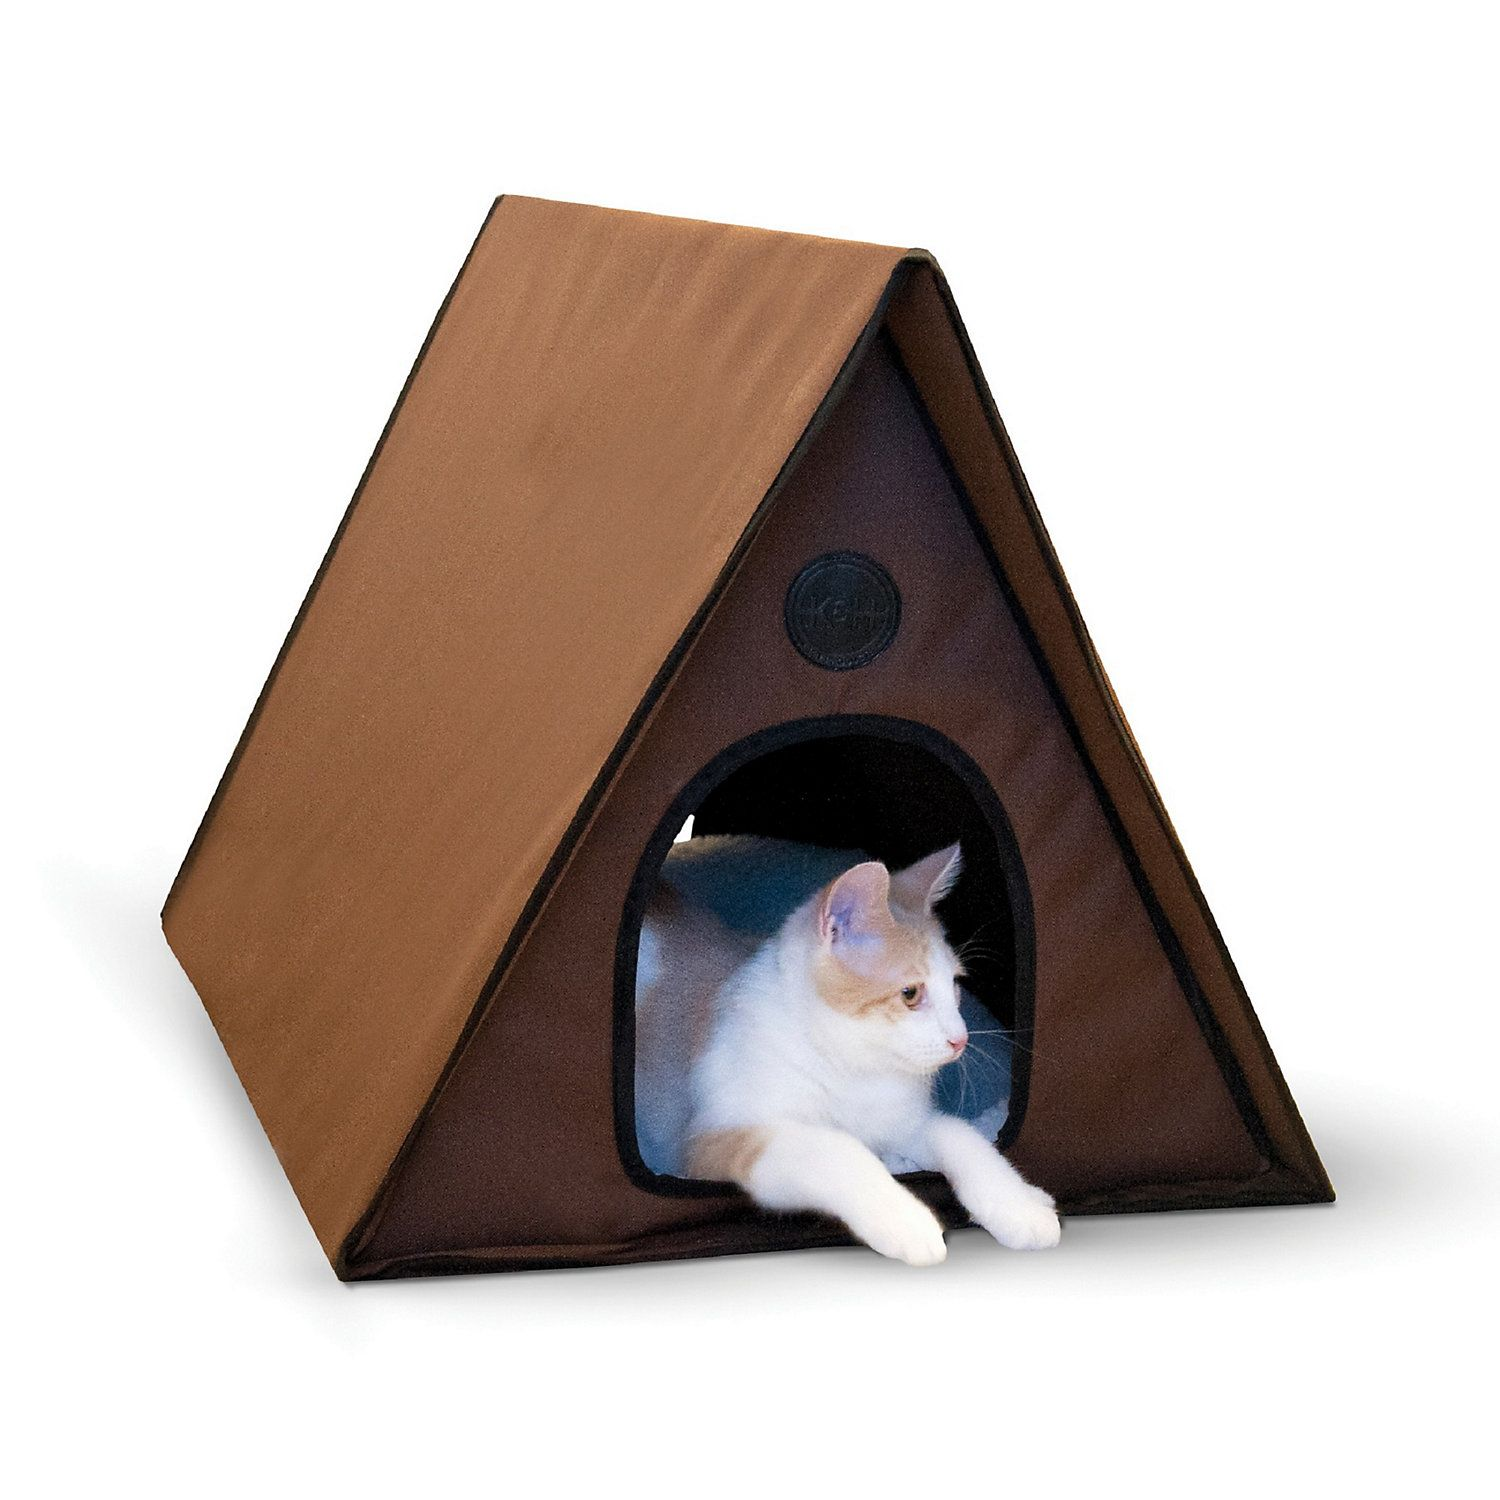 K H Chocoloate Outdoor Heated A Frame Cat Bed 35 L X 20 5 W Petco Cat Bed Outdoor Cat House Cats